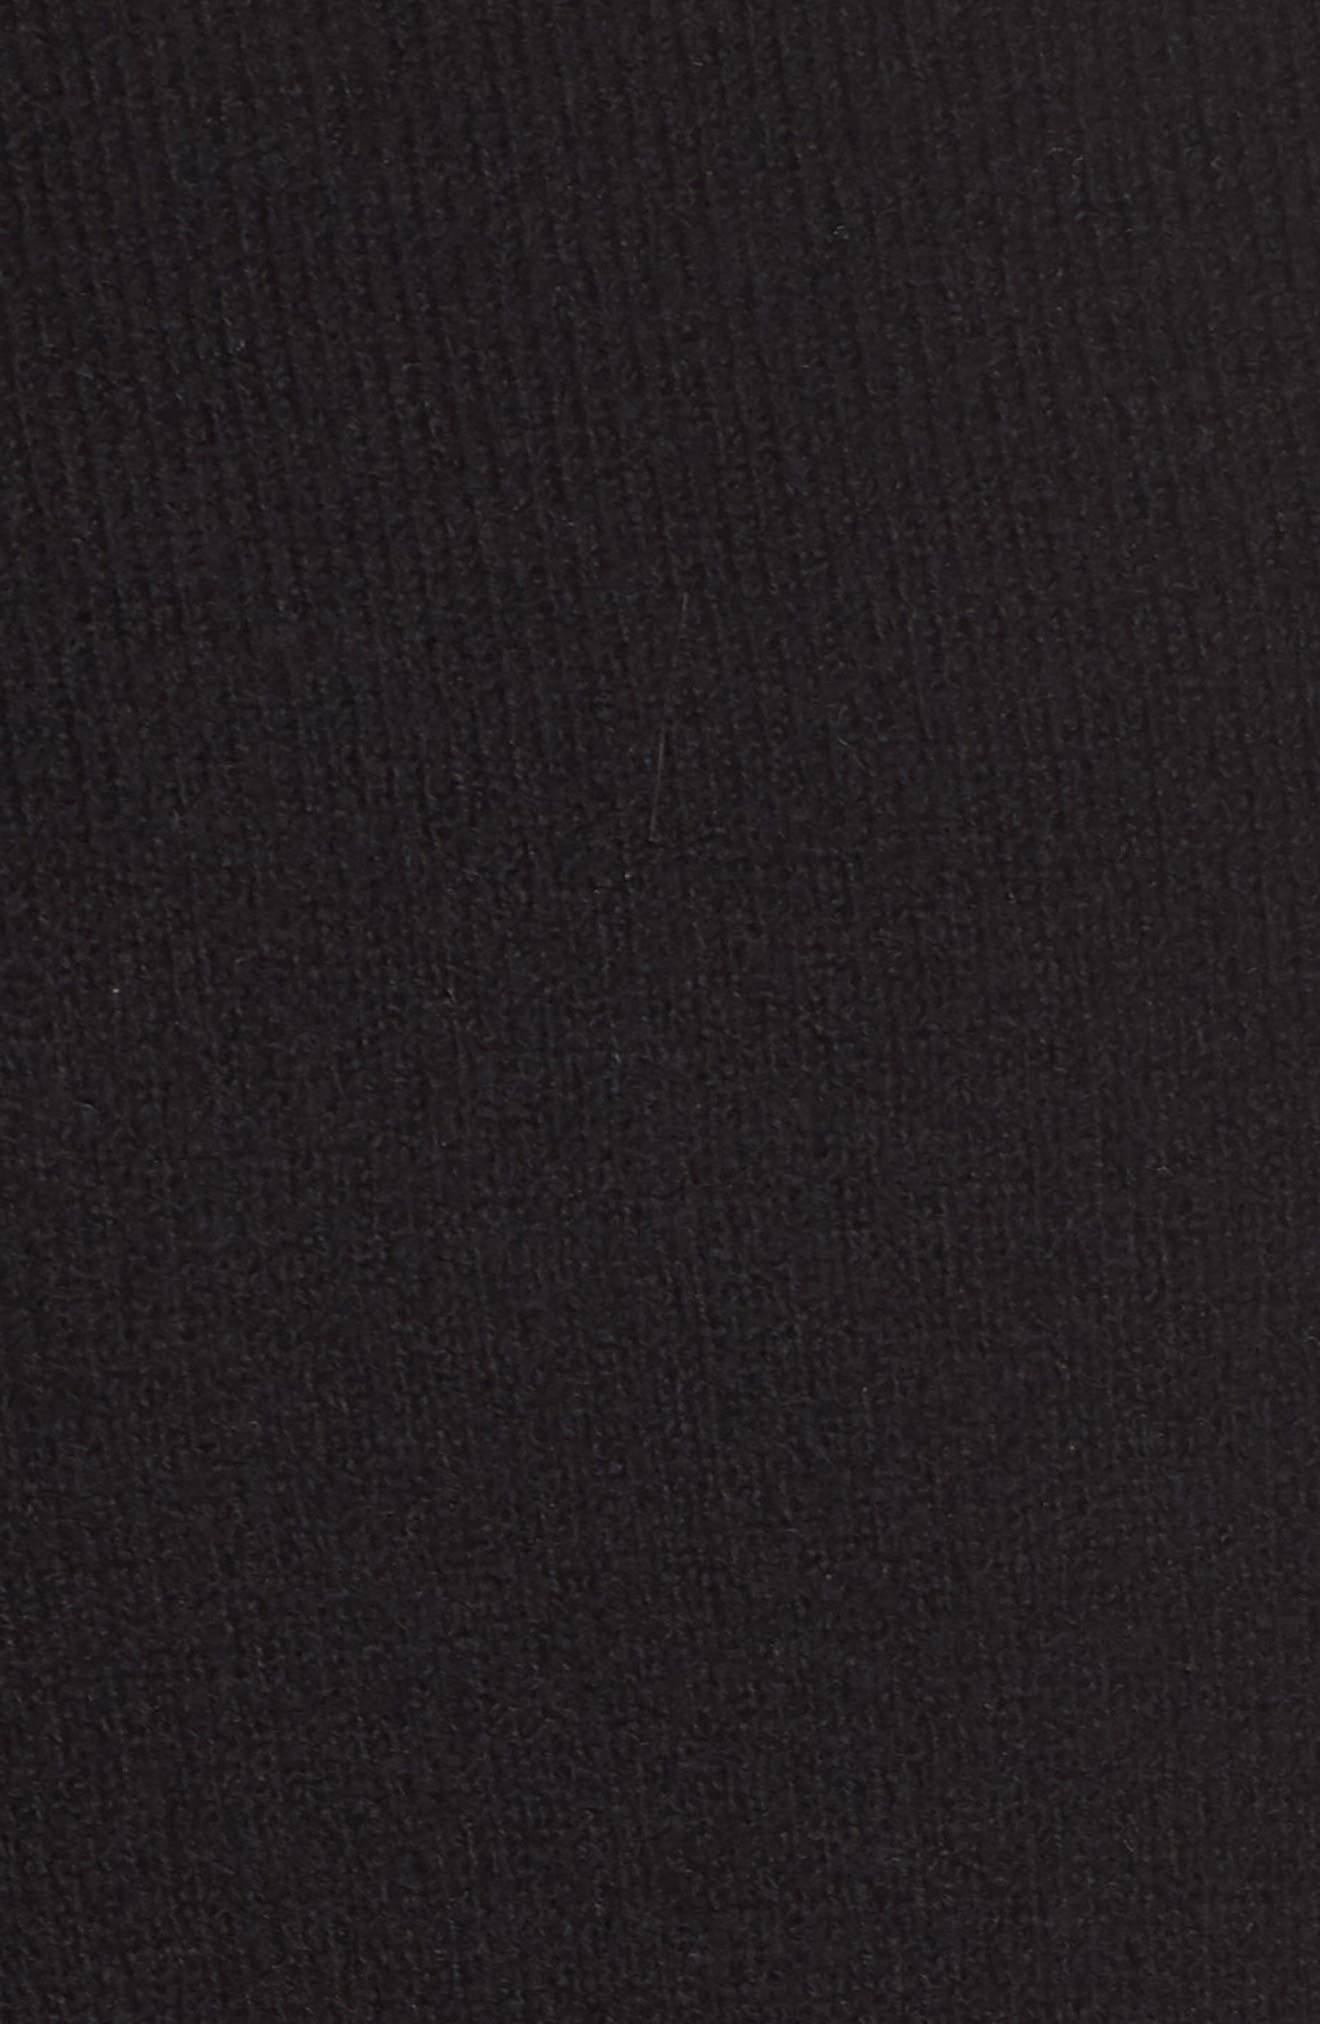 High Low Oversize Wool Blend Sweater,                             Alternate thumbnail 11, color,                             BLACK